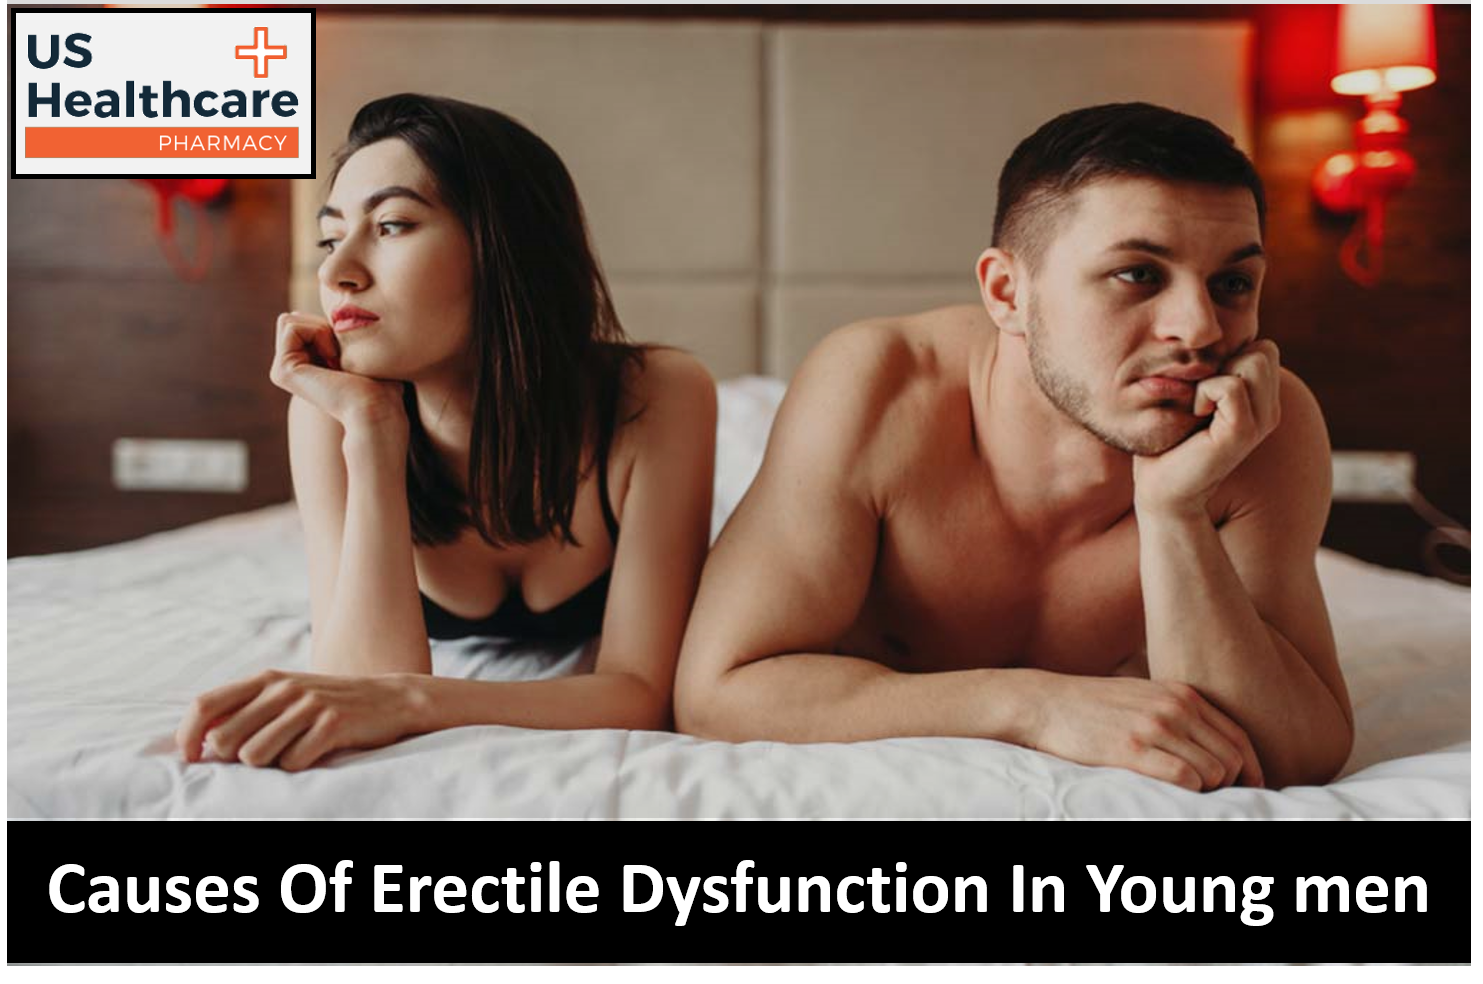 Causes of erectile dysfunction in young men